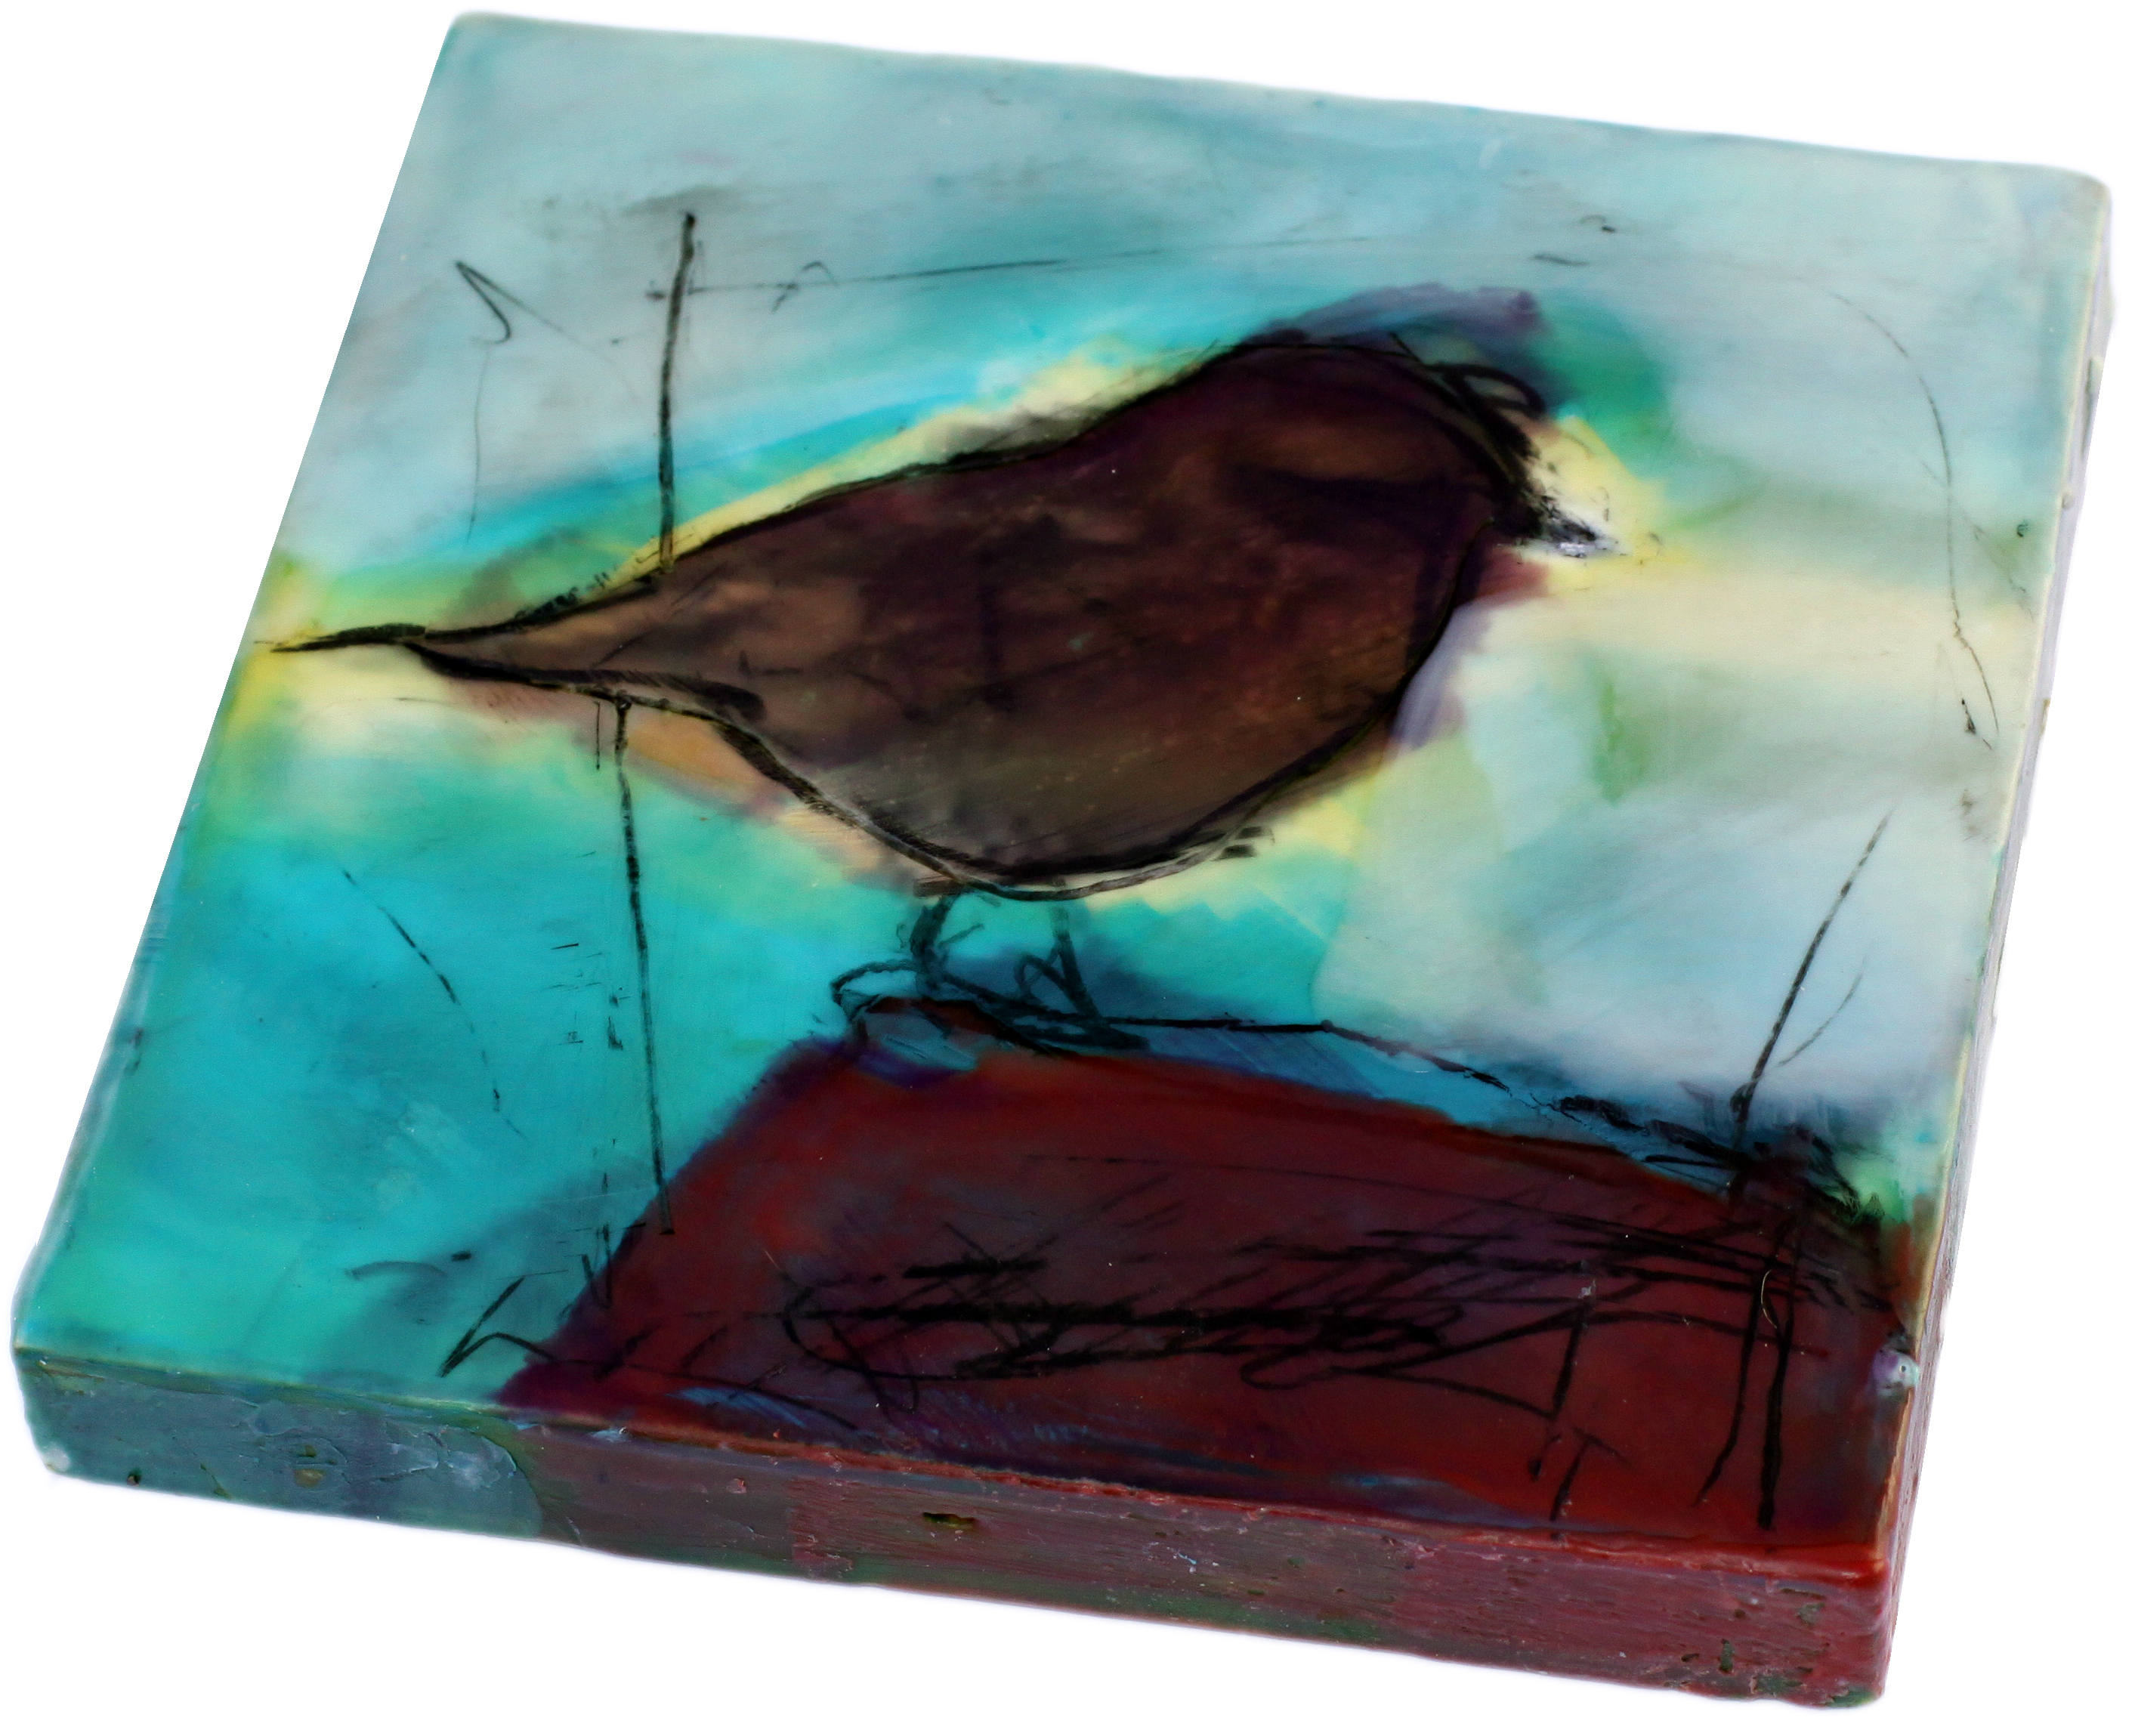 Original artwork by Barbara Downs, The Daily Bird, Encaustic/Oil/Photo on Panel